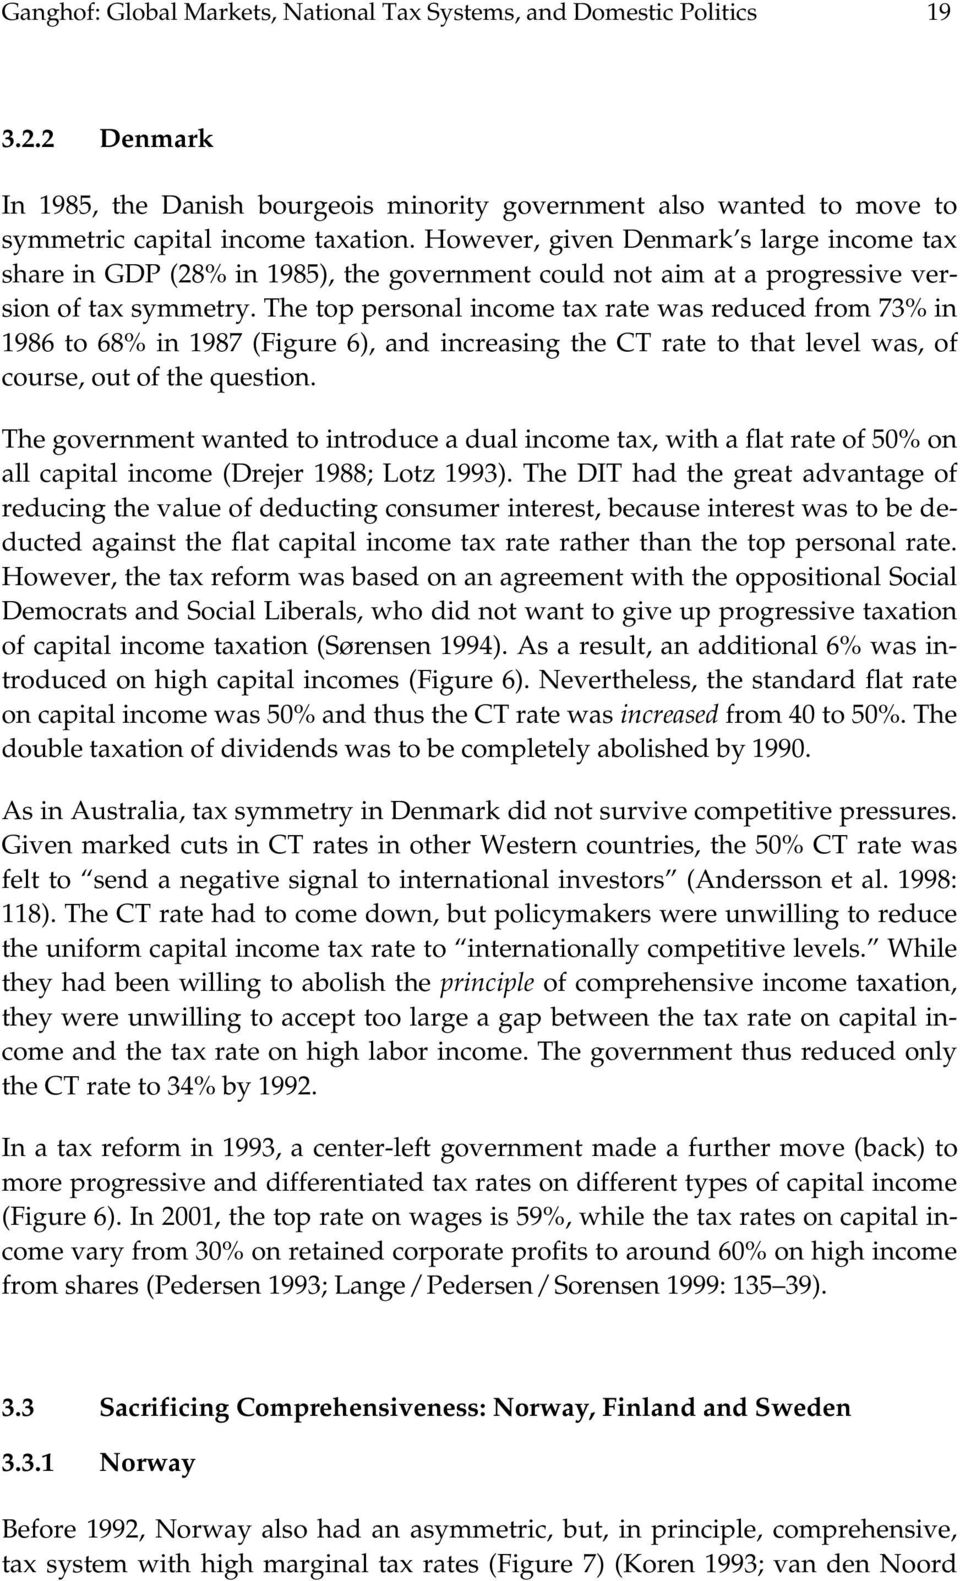 The top personal income tax rate was reduced from 73% in 1986 to 68% in 1987 (Figure 6), and increasing the CT rate to that level was, of course, out of the question.